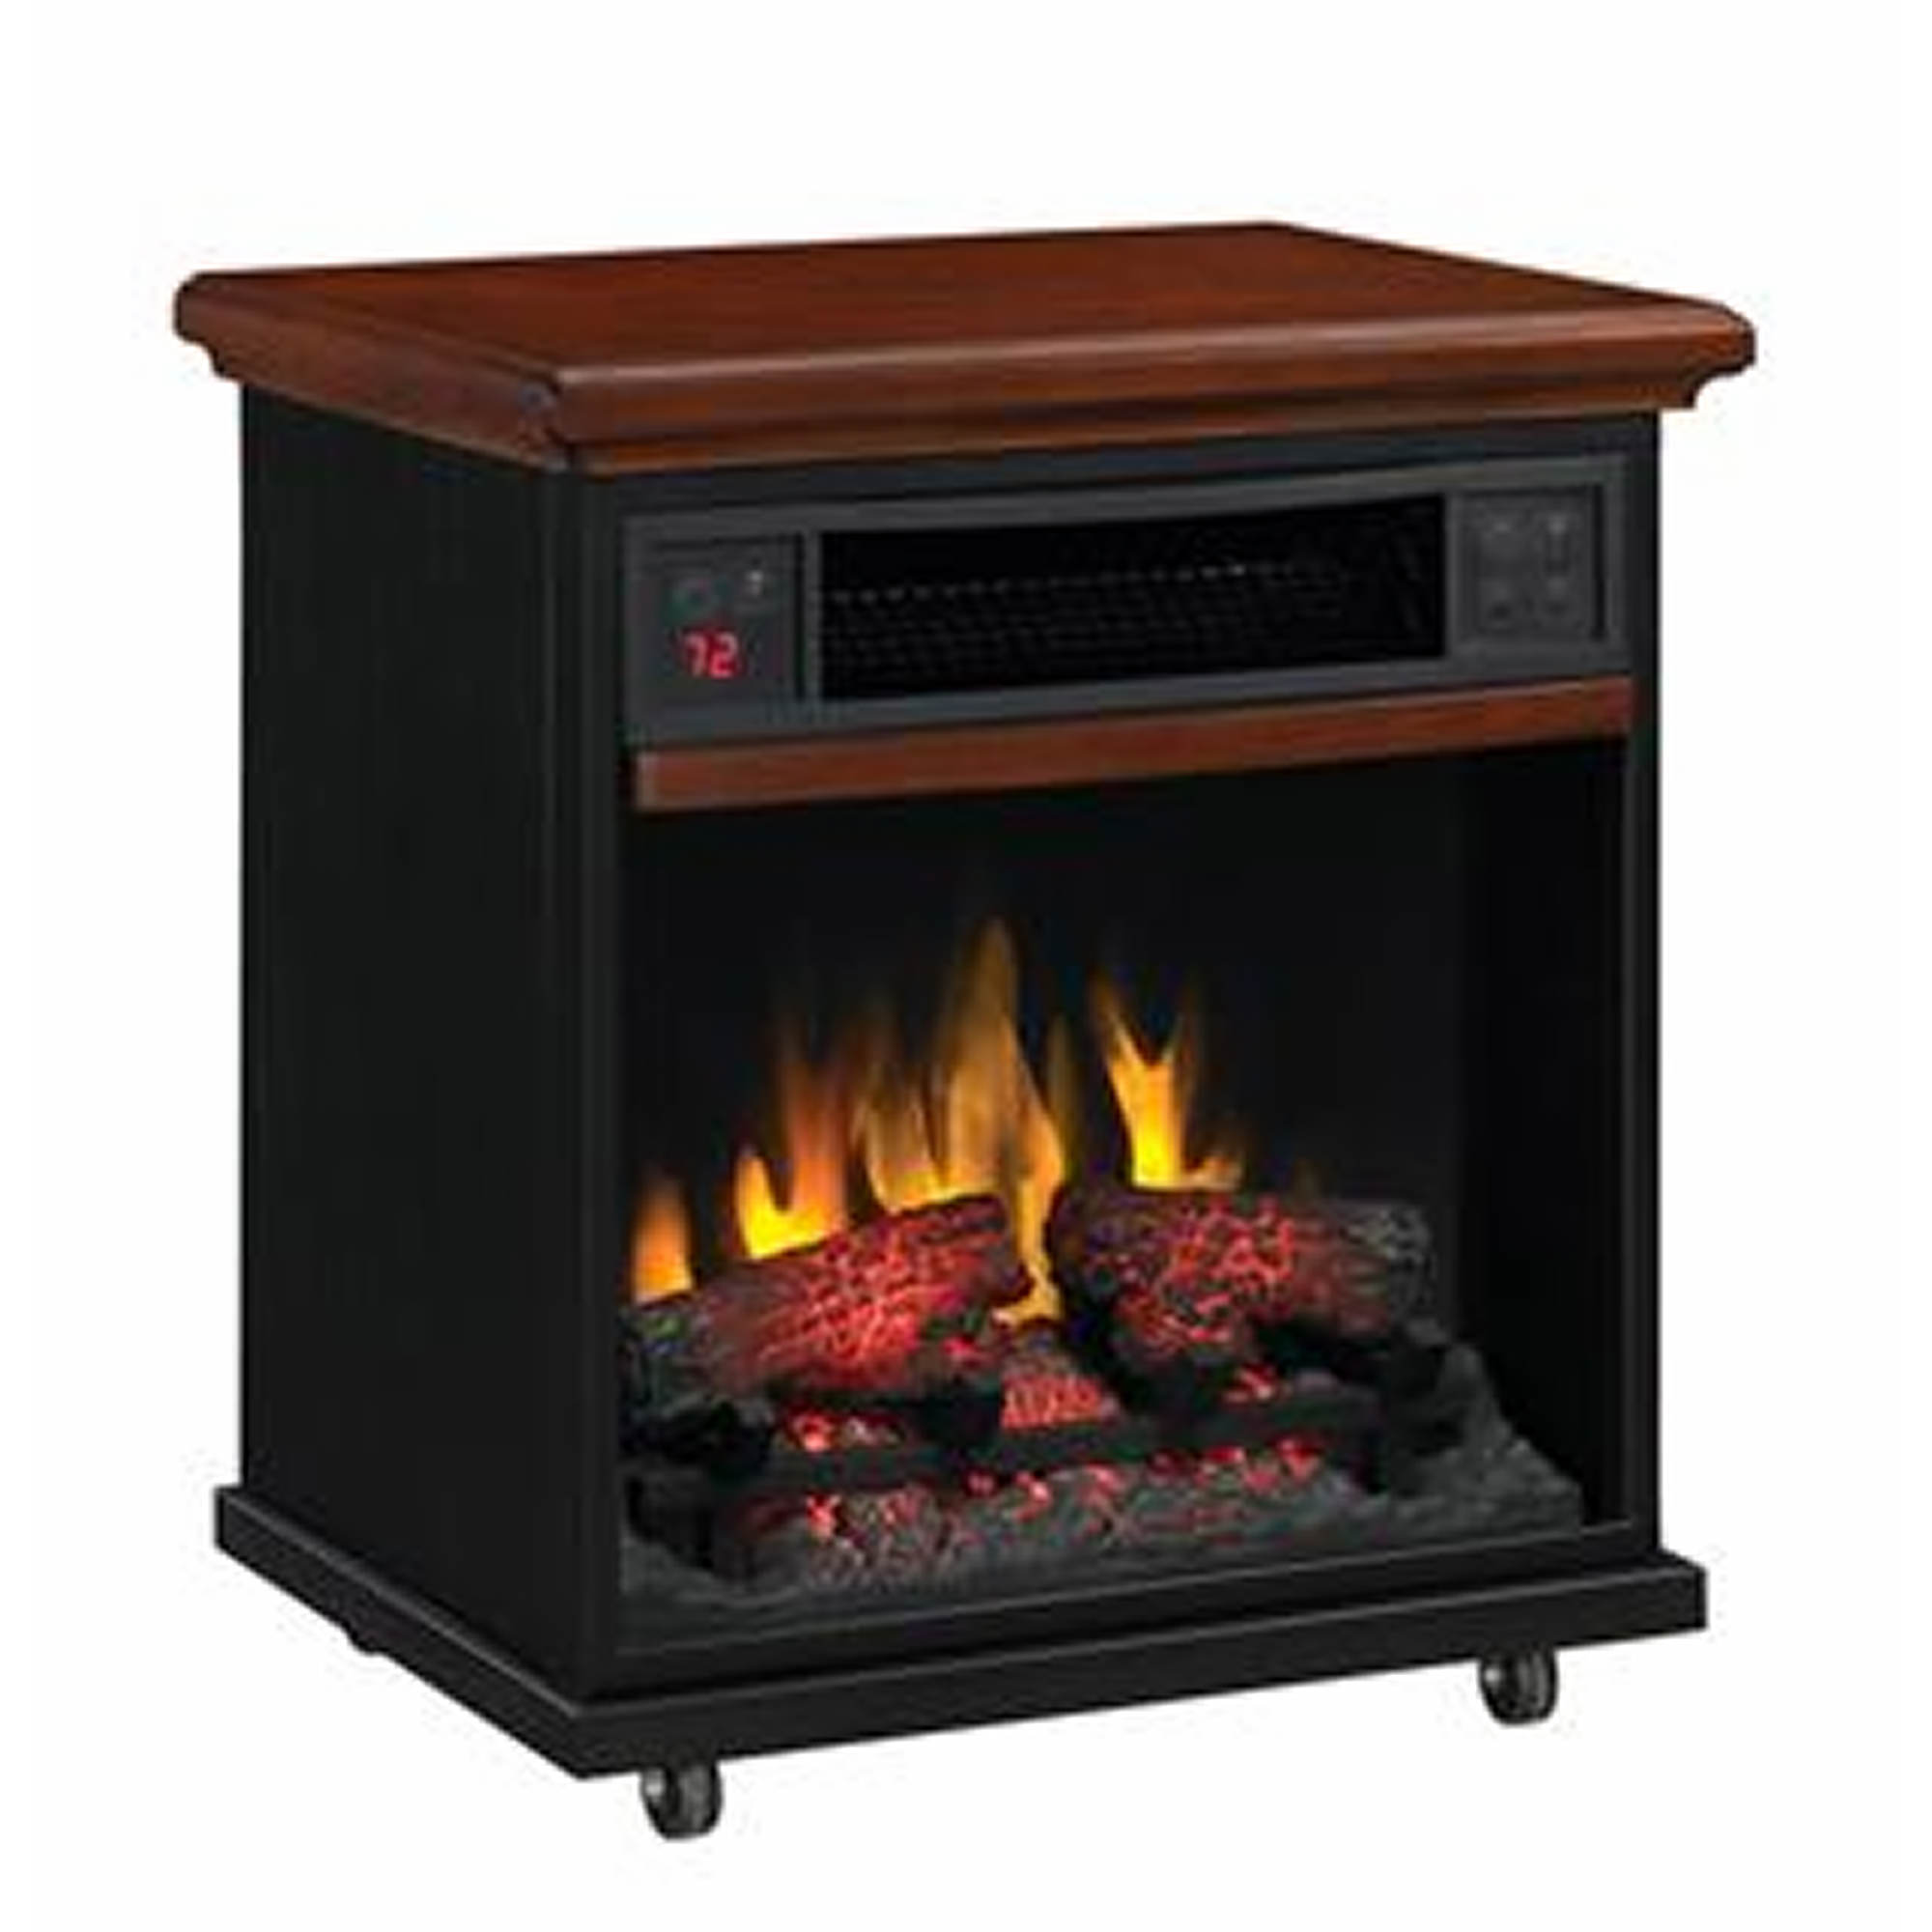 Duraflame infrared quartz heater coupons